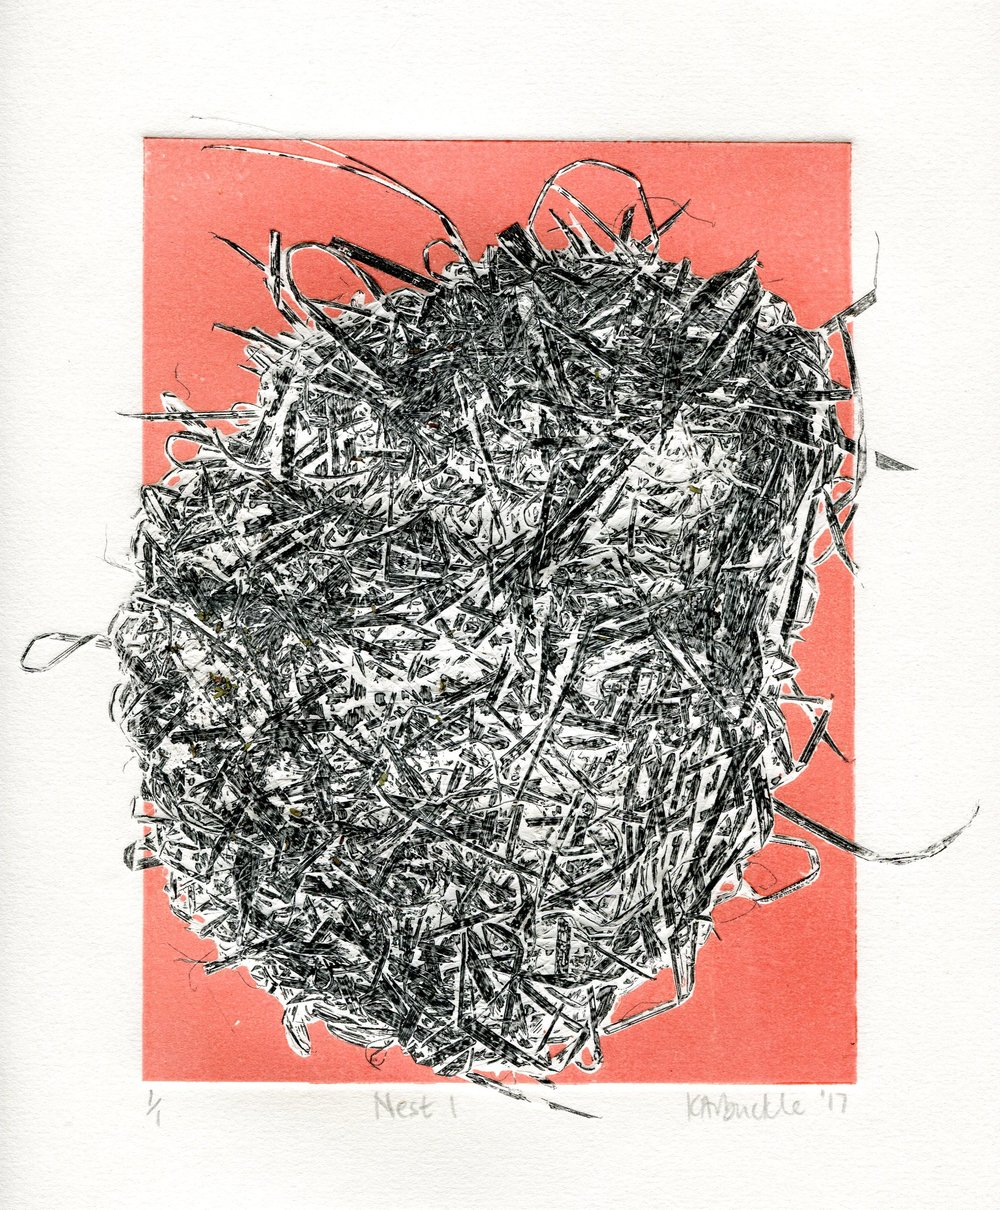 109A KATHY ARBUCKLE, NEST 1, MONOTYPE ON PAPER